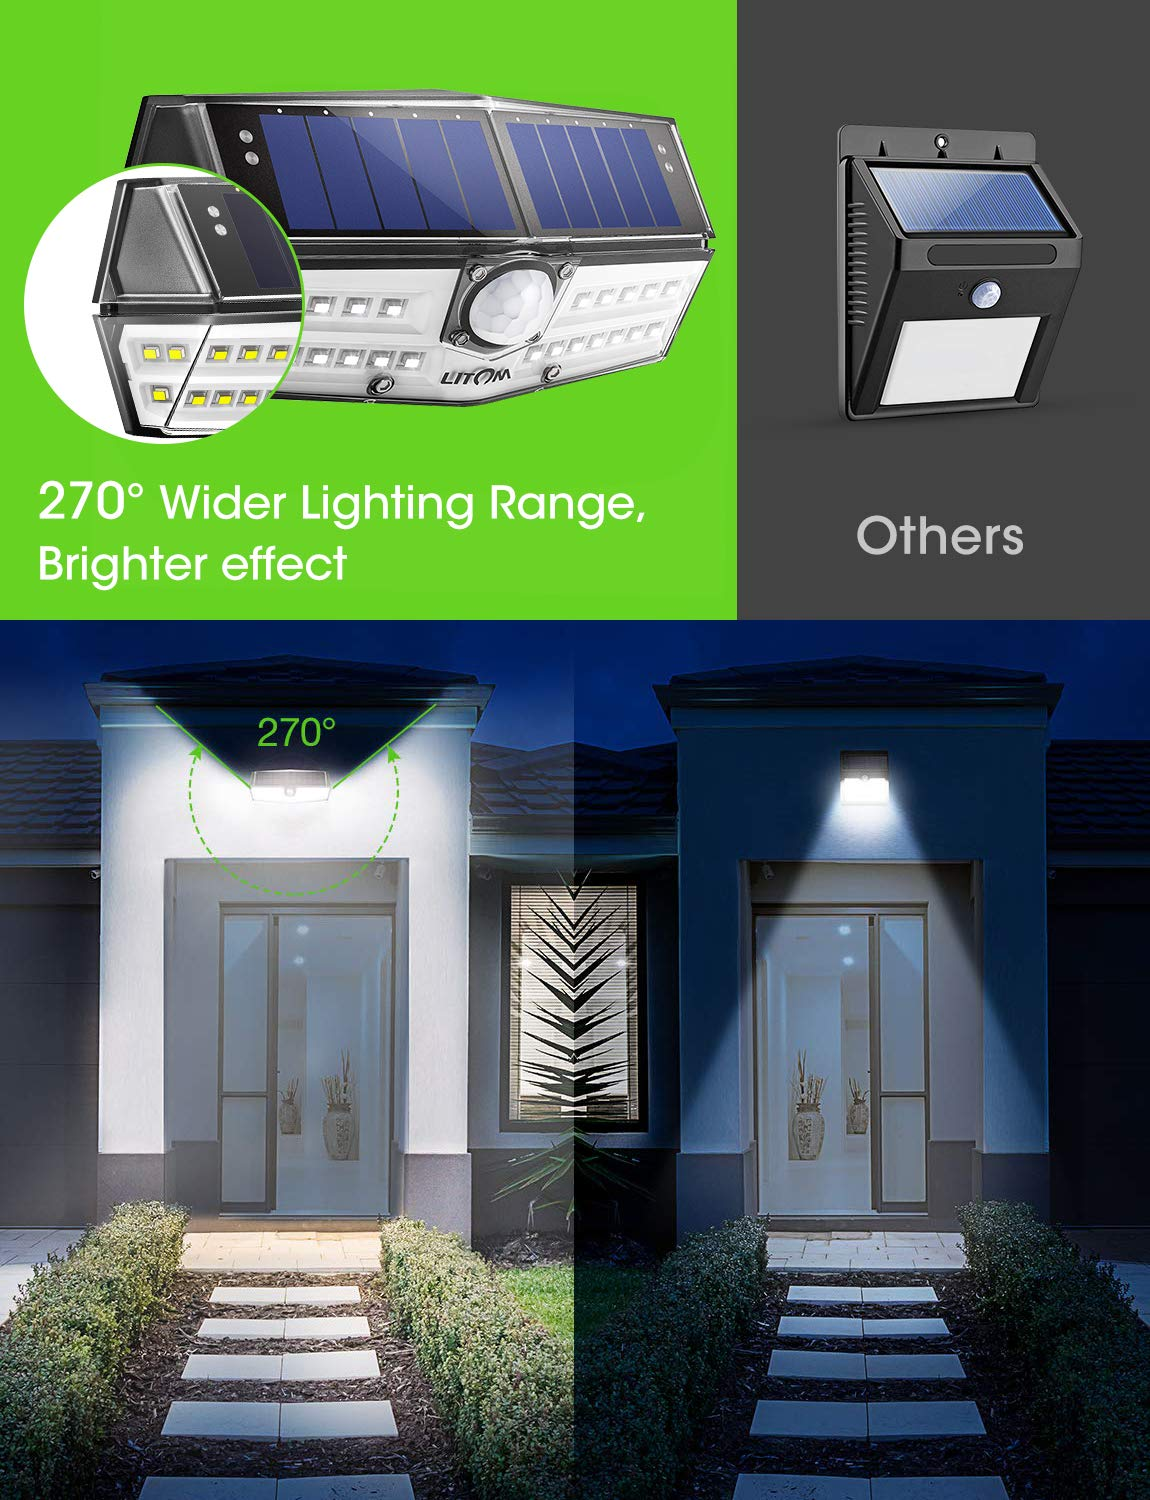 LITOM Solar Lights Outdoor, IP67 Waterproof Wireless Solar Motion Sensor Lights with 270 Wide Angle, Easy-to-Install Security Lights for Front Door, Yard, Garage, Deck-2 Pack